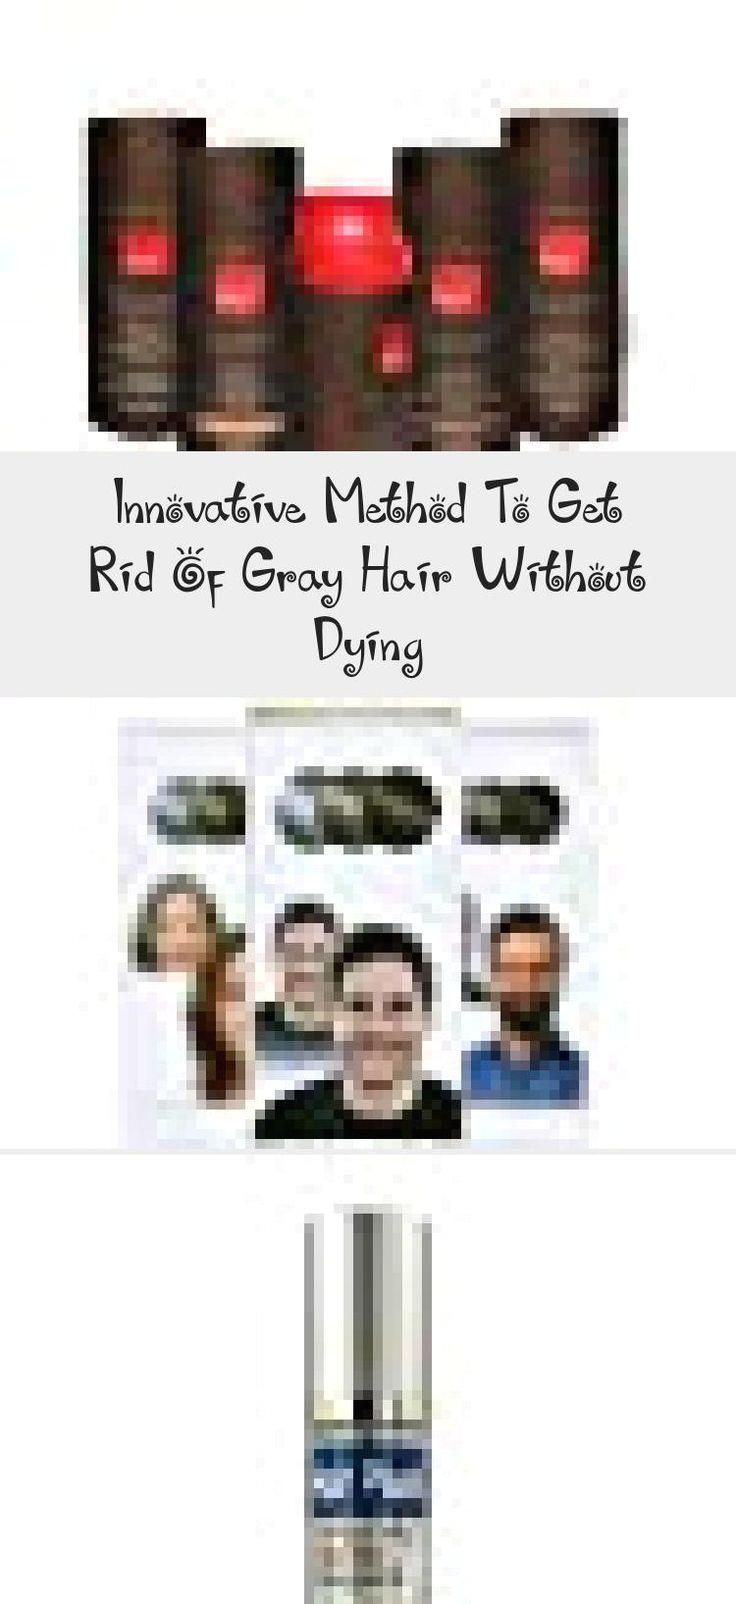 #Asianhaircare  #haircareDry  #haircareFrizzy  #Naturalhaircare  #haircareMonat #method #gray  Innovative method to get rid of gray hair without dying. – a spoonful of honey – a spoonful of castor oil – a spoonful of brandy – egg yolk